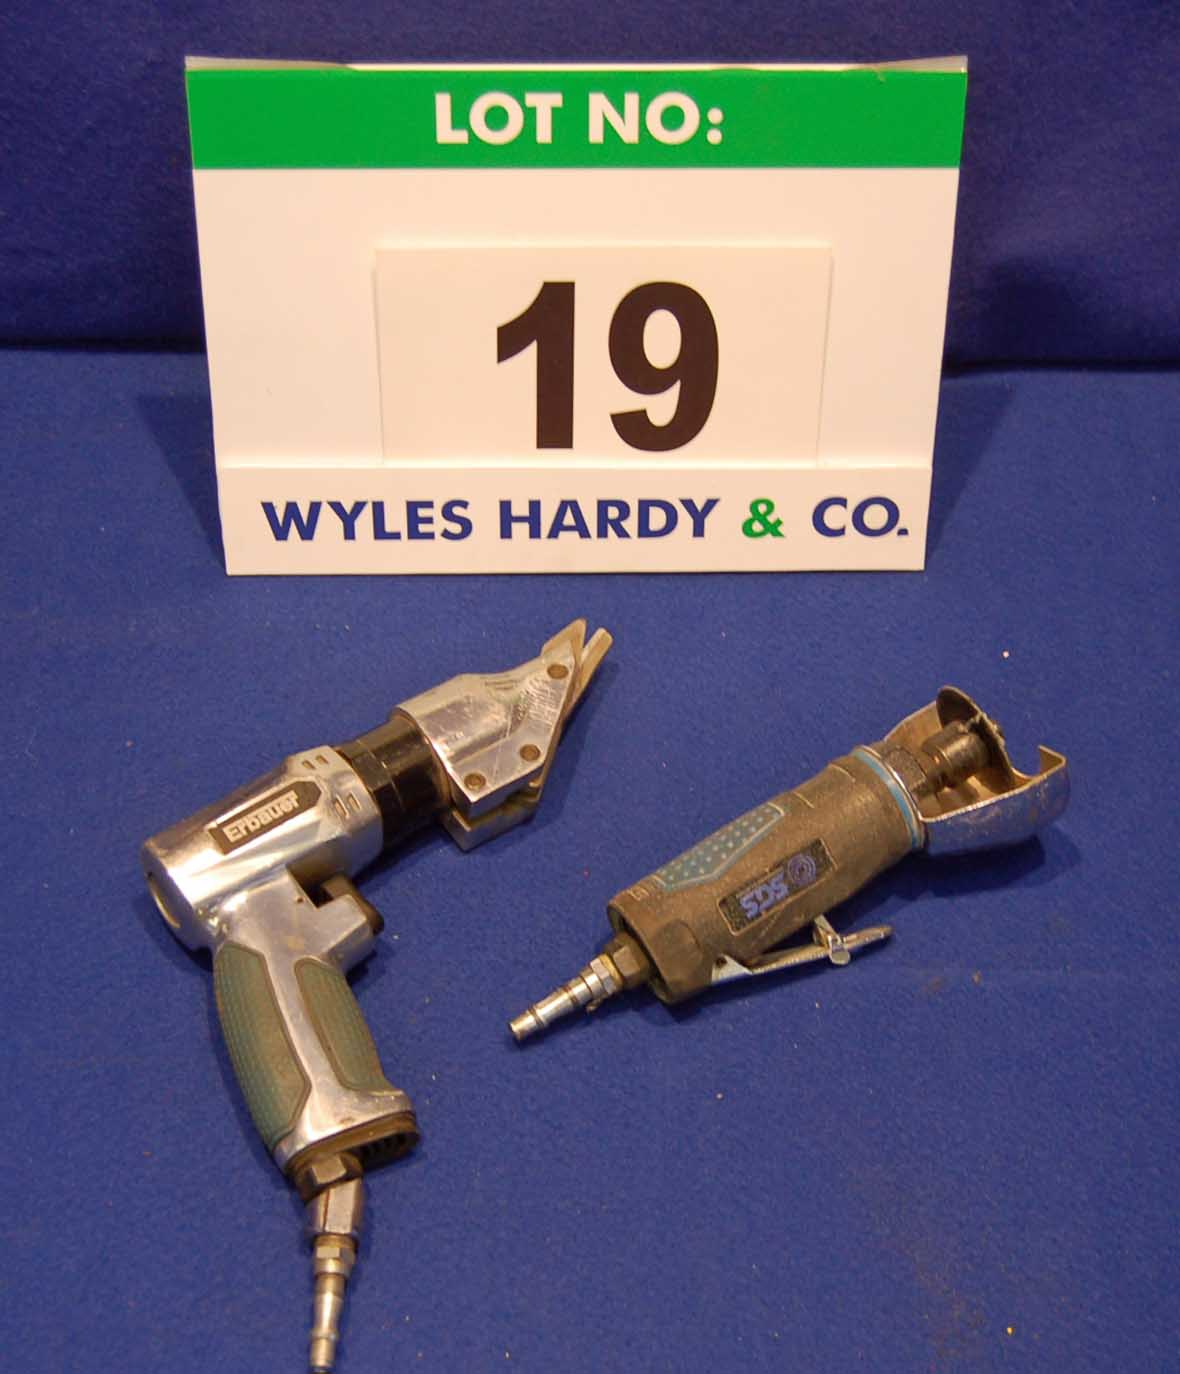 Lot 19 - A ERBAUER Pneumatic Nibbler and An SGS 3 inch Pneumatic Cut-Off Saw